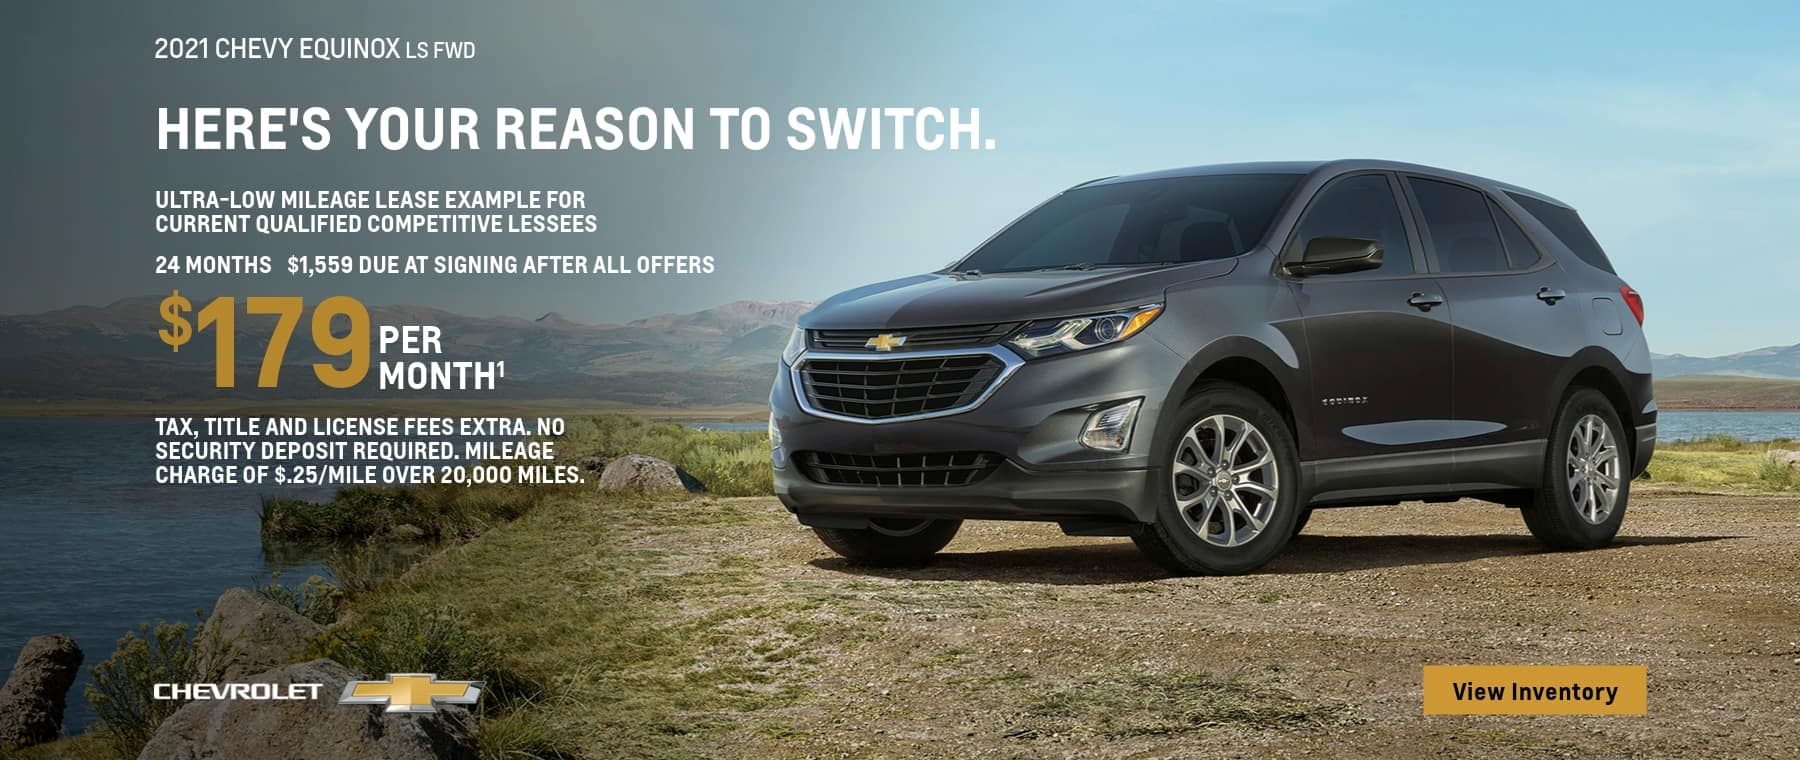 2021 Chevy Equinox LS FWD. Ultra low mileage lease example for current qualified competitive lessees. $179 per month for 24 months. $1,559 due at signing after all offers.